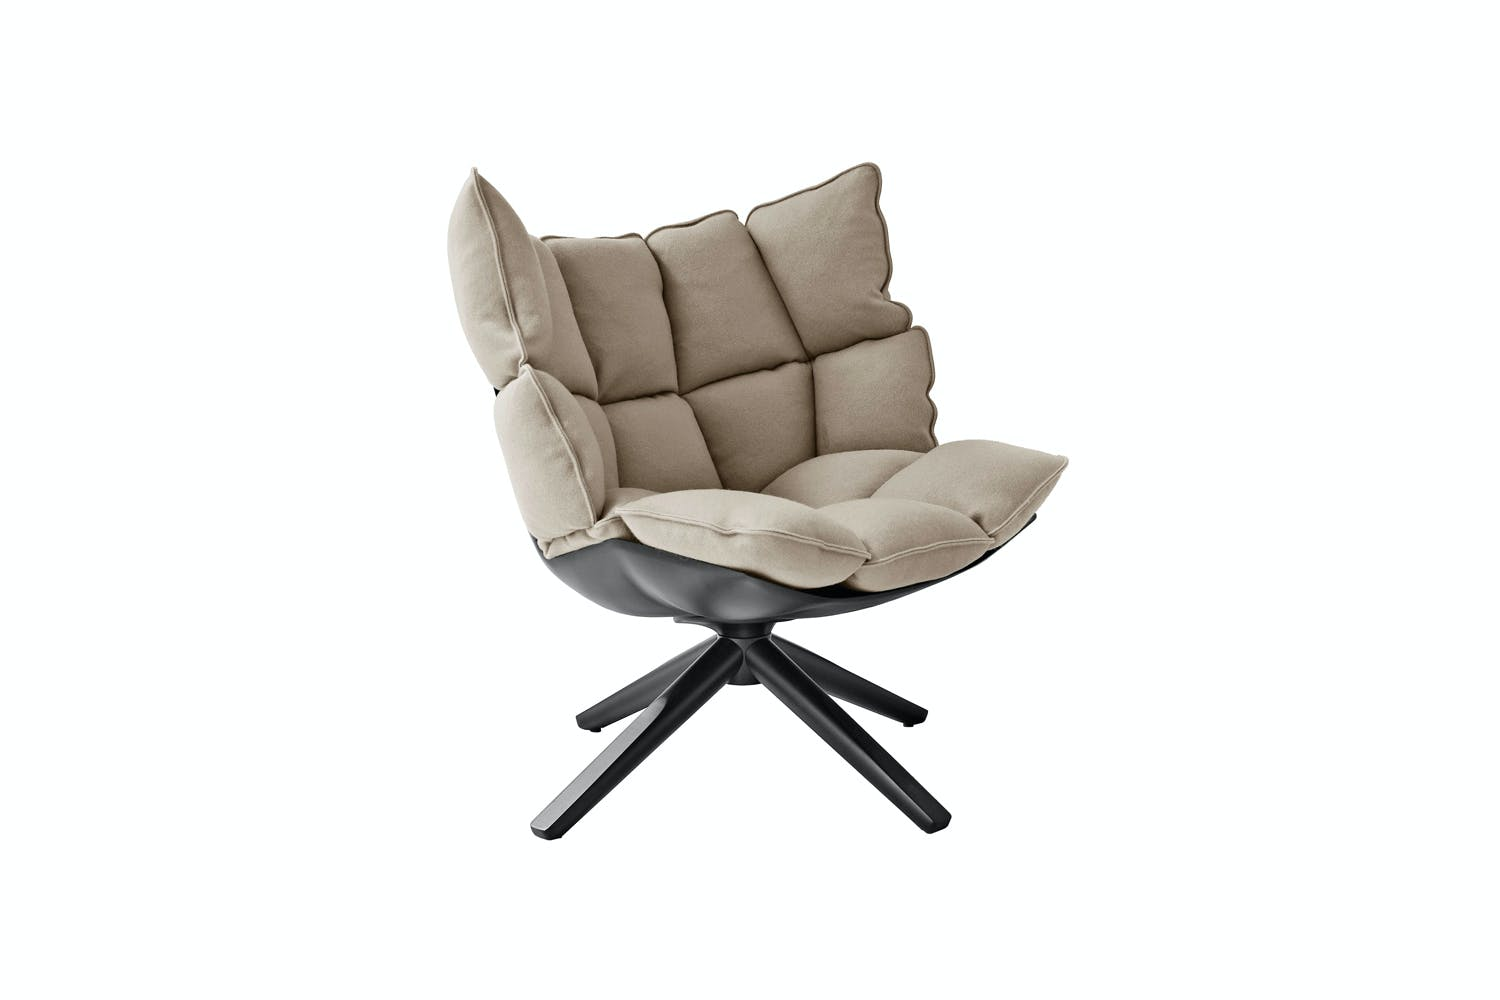 Husk Swivel Armchair With Snug Sides By Patricia Urquiola For Bb